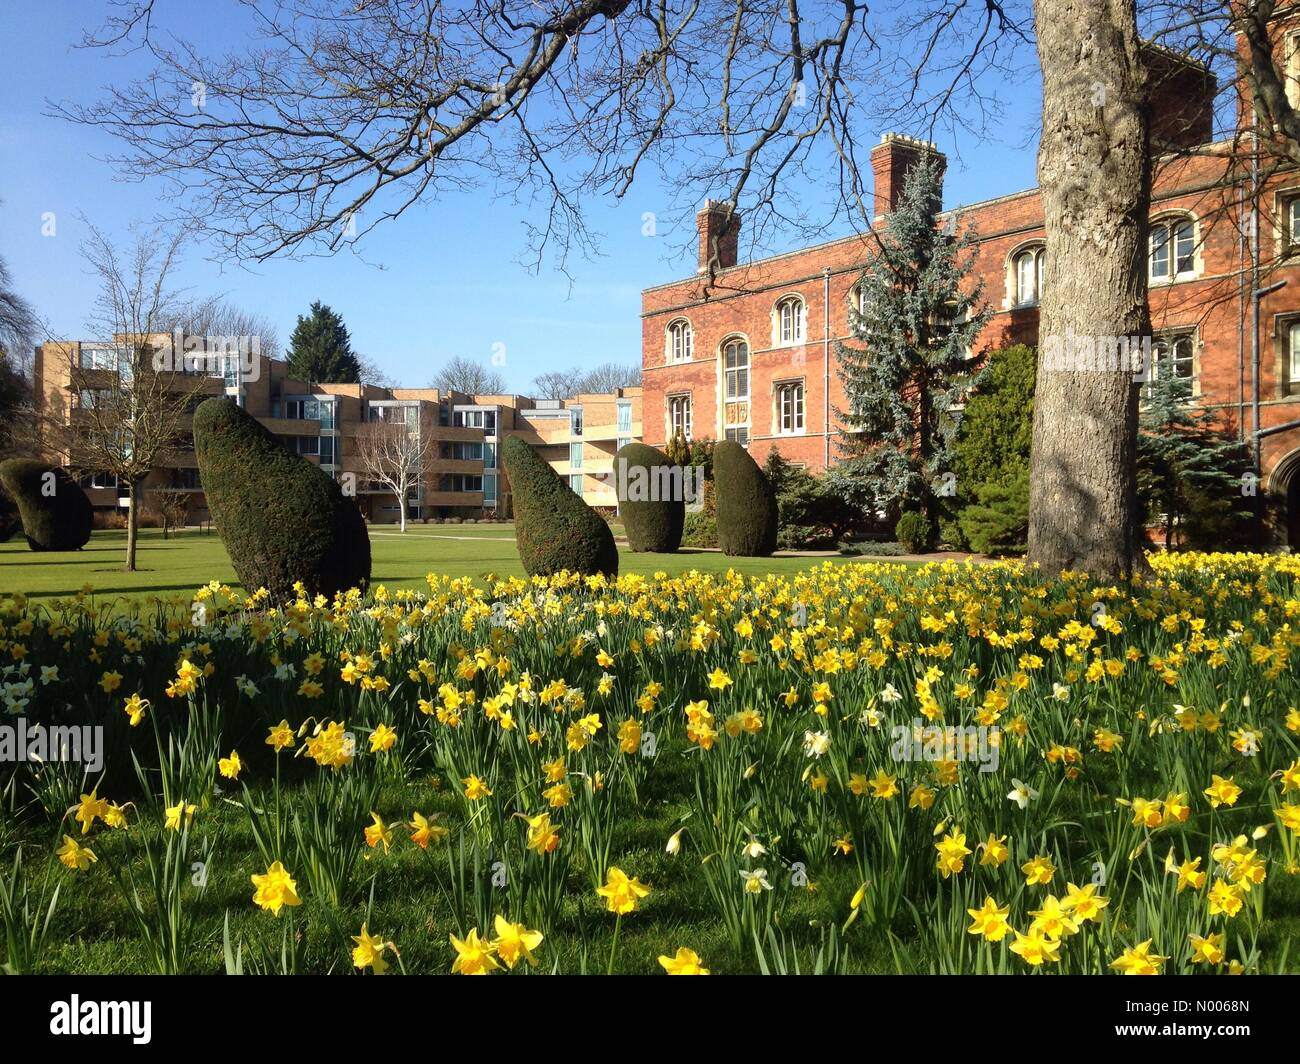 13/03/15 Jesus College, Cambridge, England, UK. Yellow Daffodils signal the arrival of spring in the United Kingdom. - Stock Image